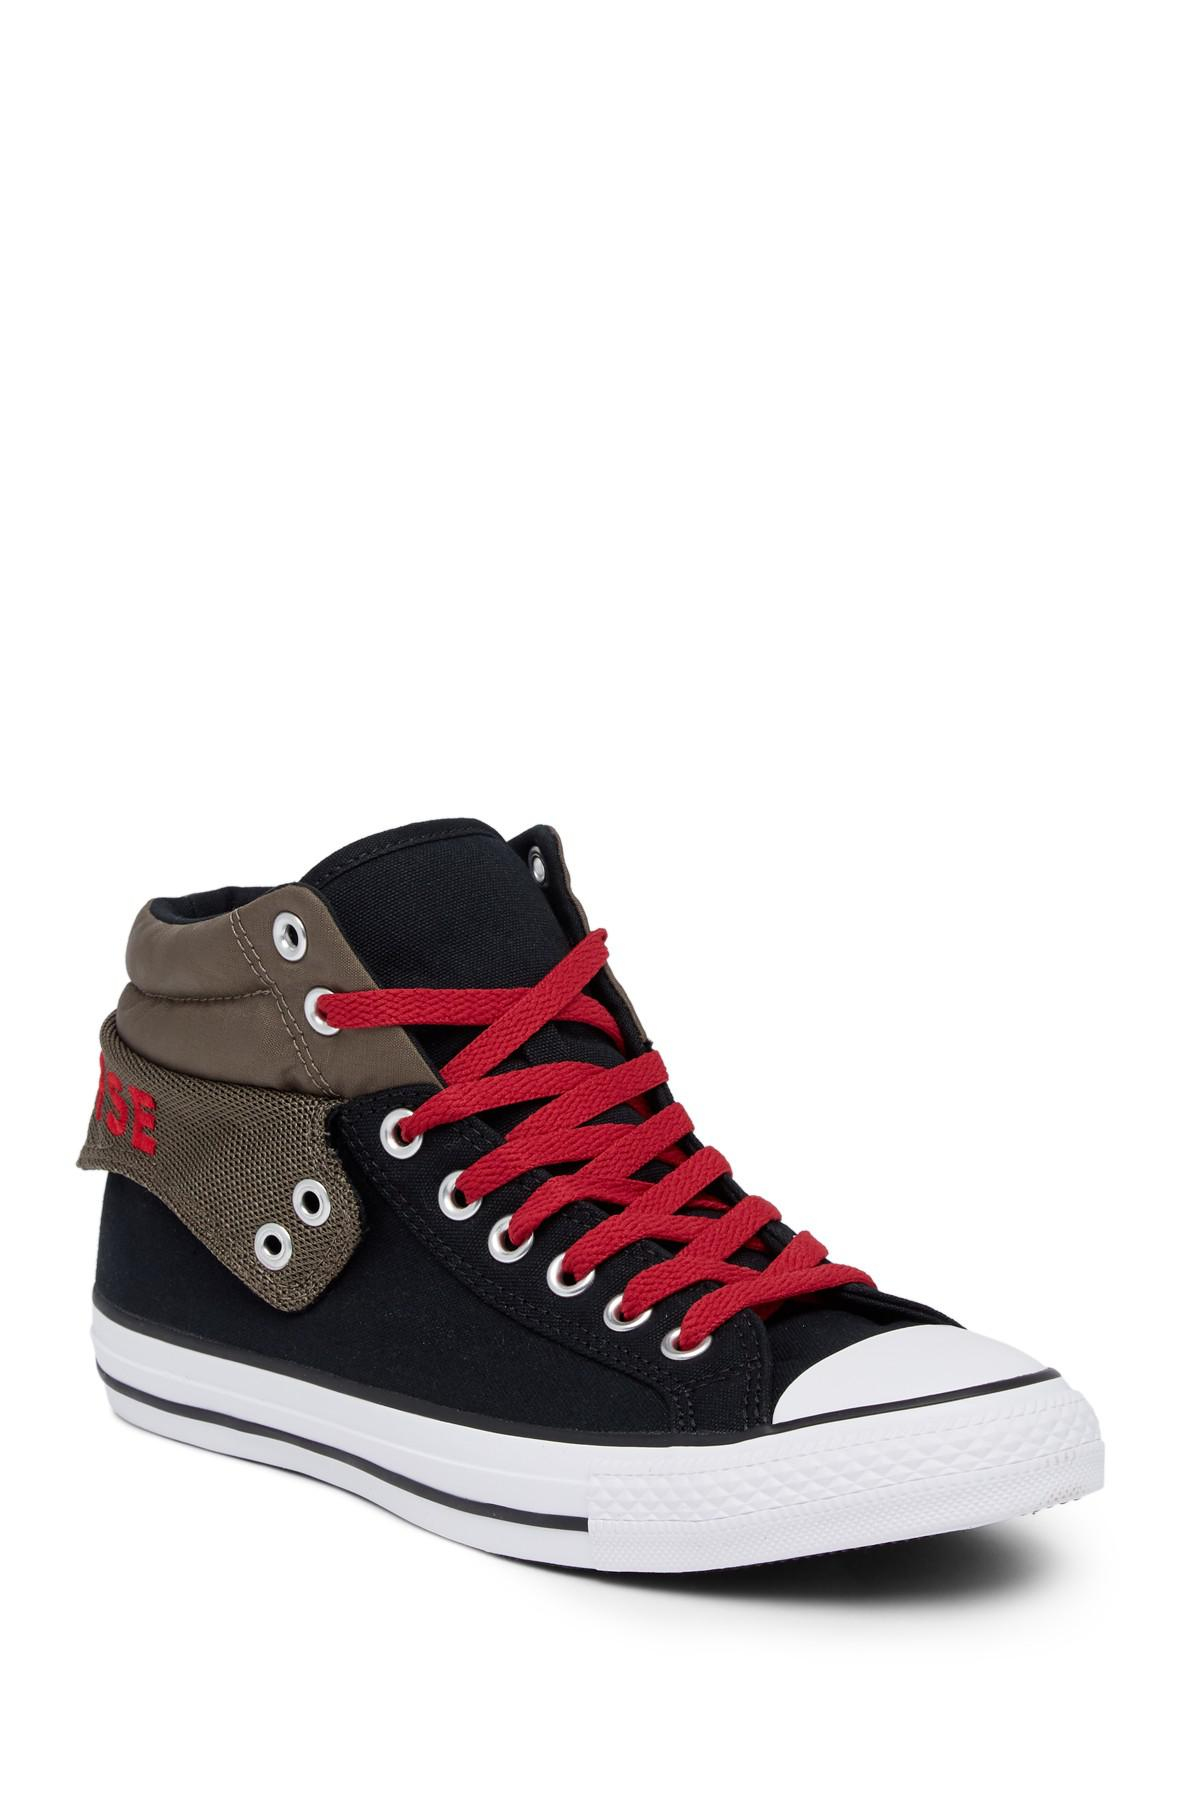 24b1bed0207 Lyst - Converse Chuck Taylor Pc2 Mid Sneaker in Black for Men